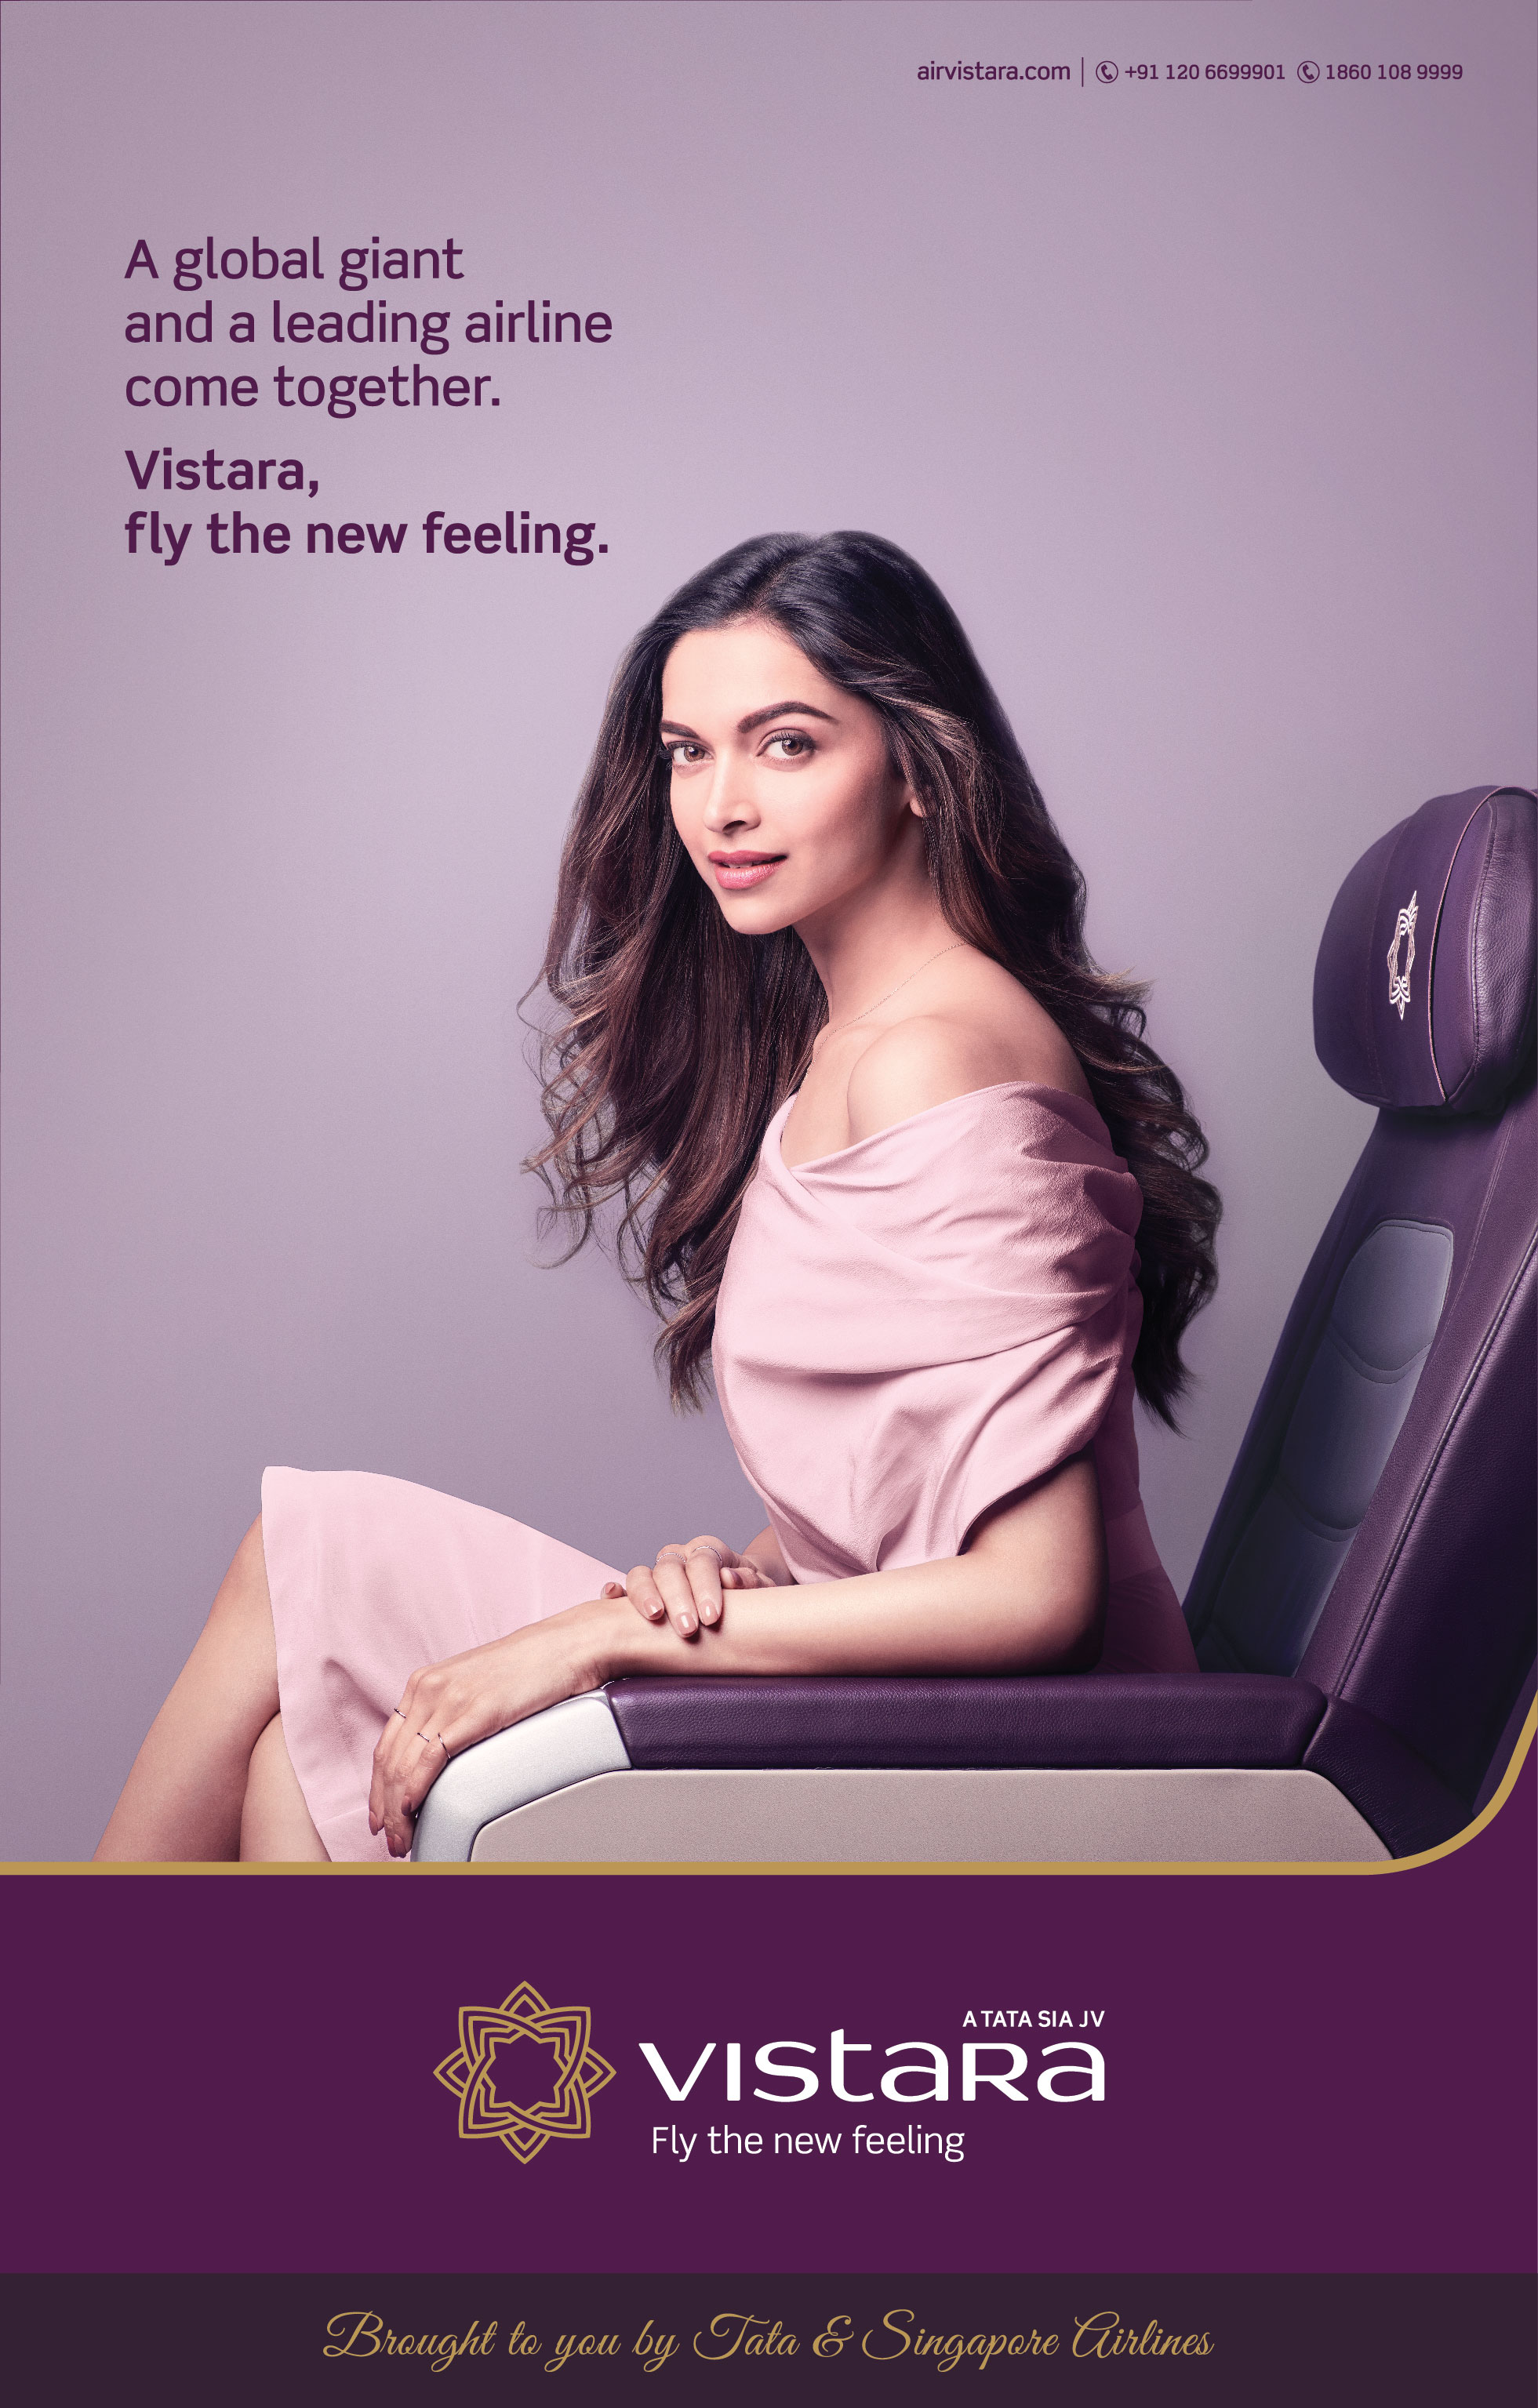 Exclusive-Vistara's New Brand Ambassador